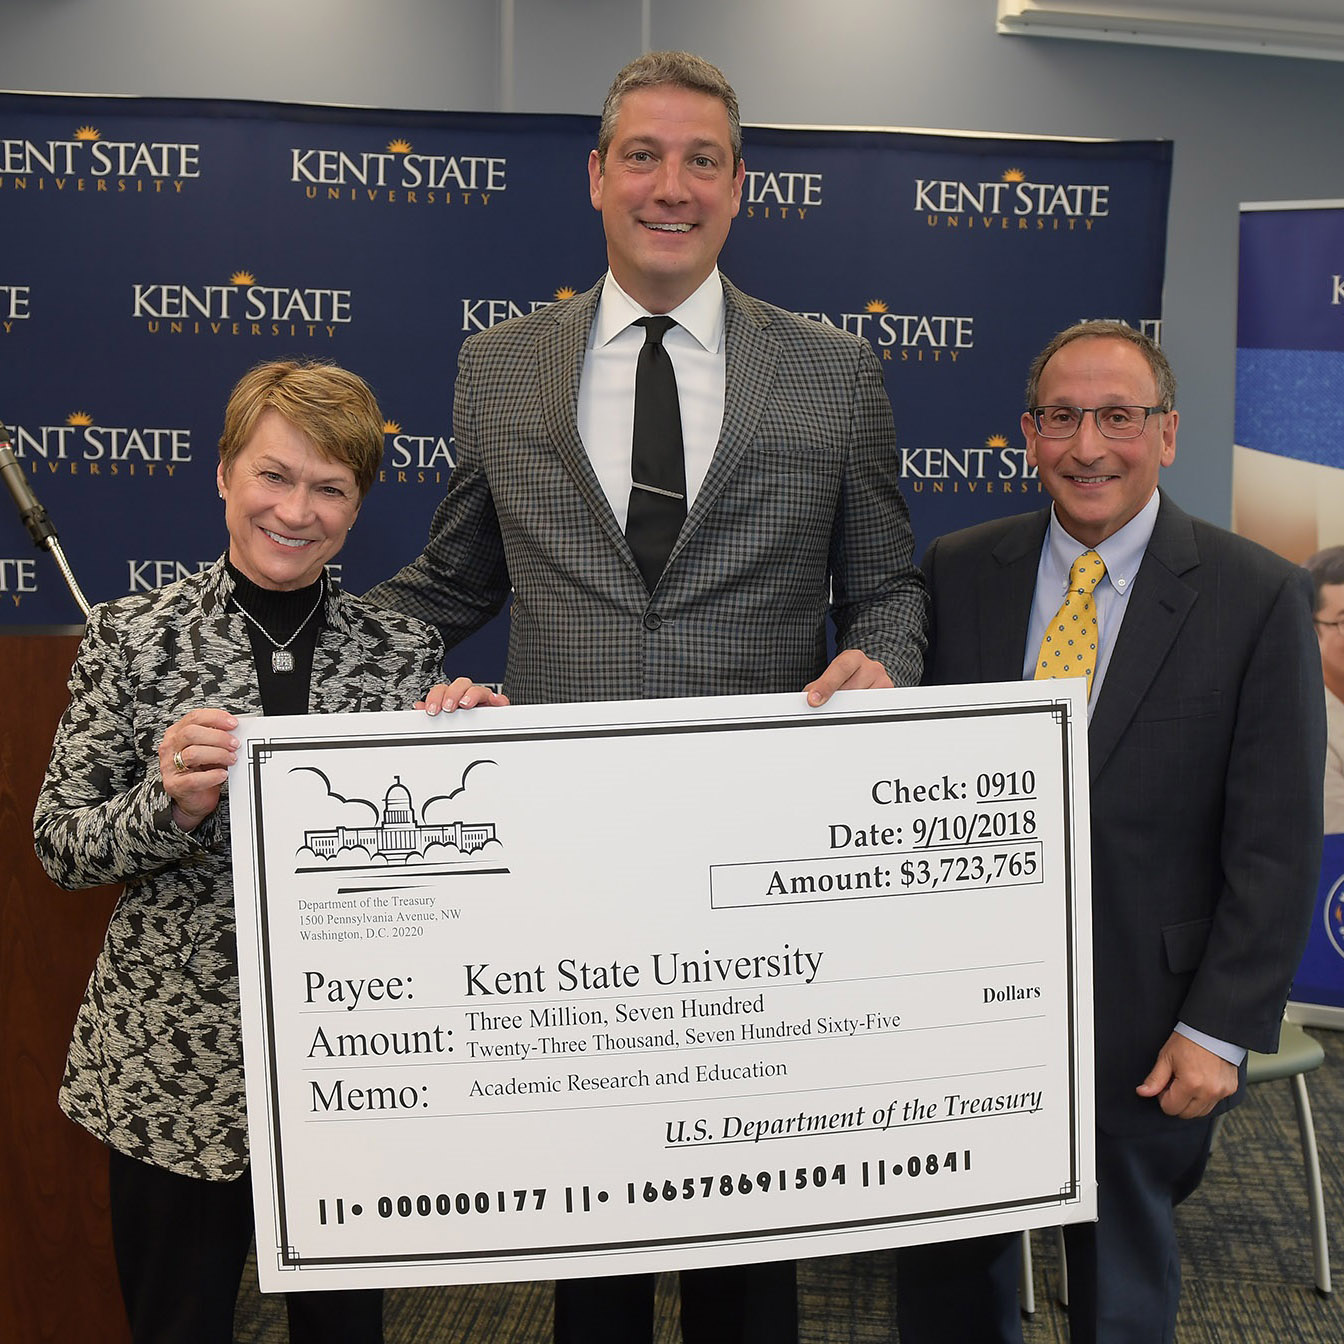 U.S. Rep. Tim Ryan (center) presents a giant check to Kent State University President Beverly J. Warren (left) and Kent State Vice President for Research and Sponsored Programs Paul DiCorleto (right).